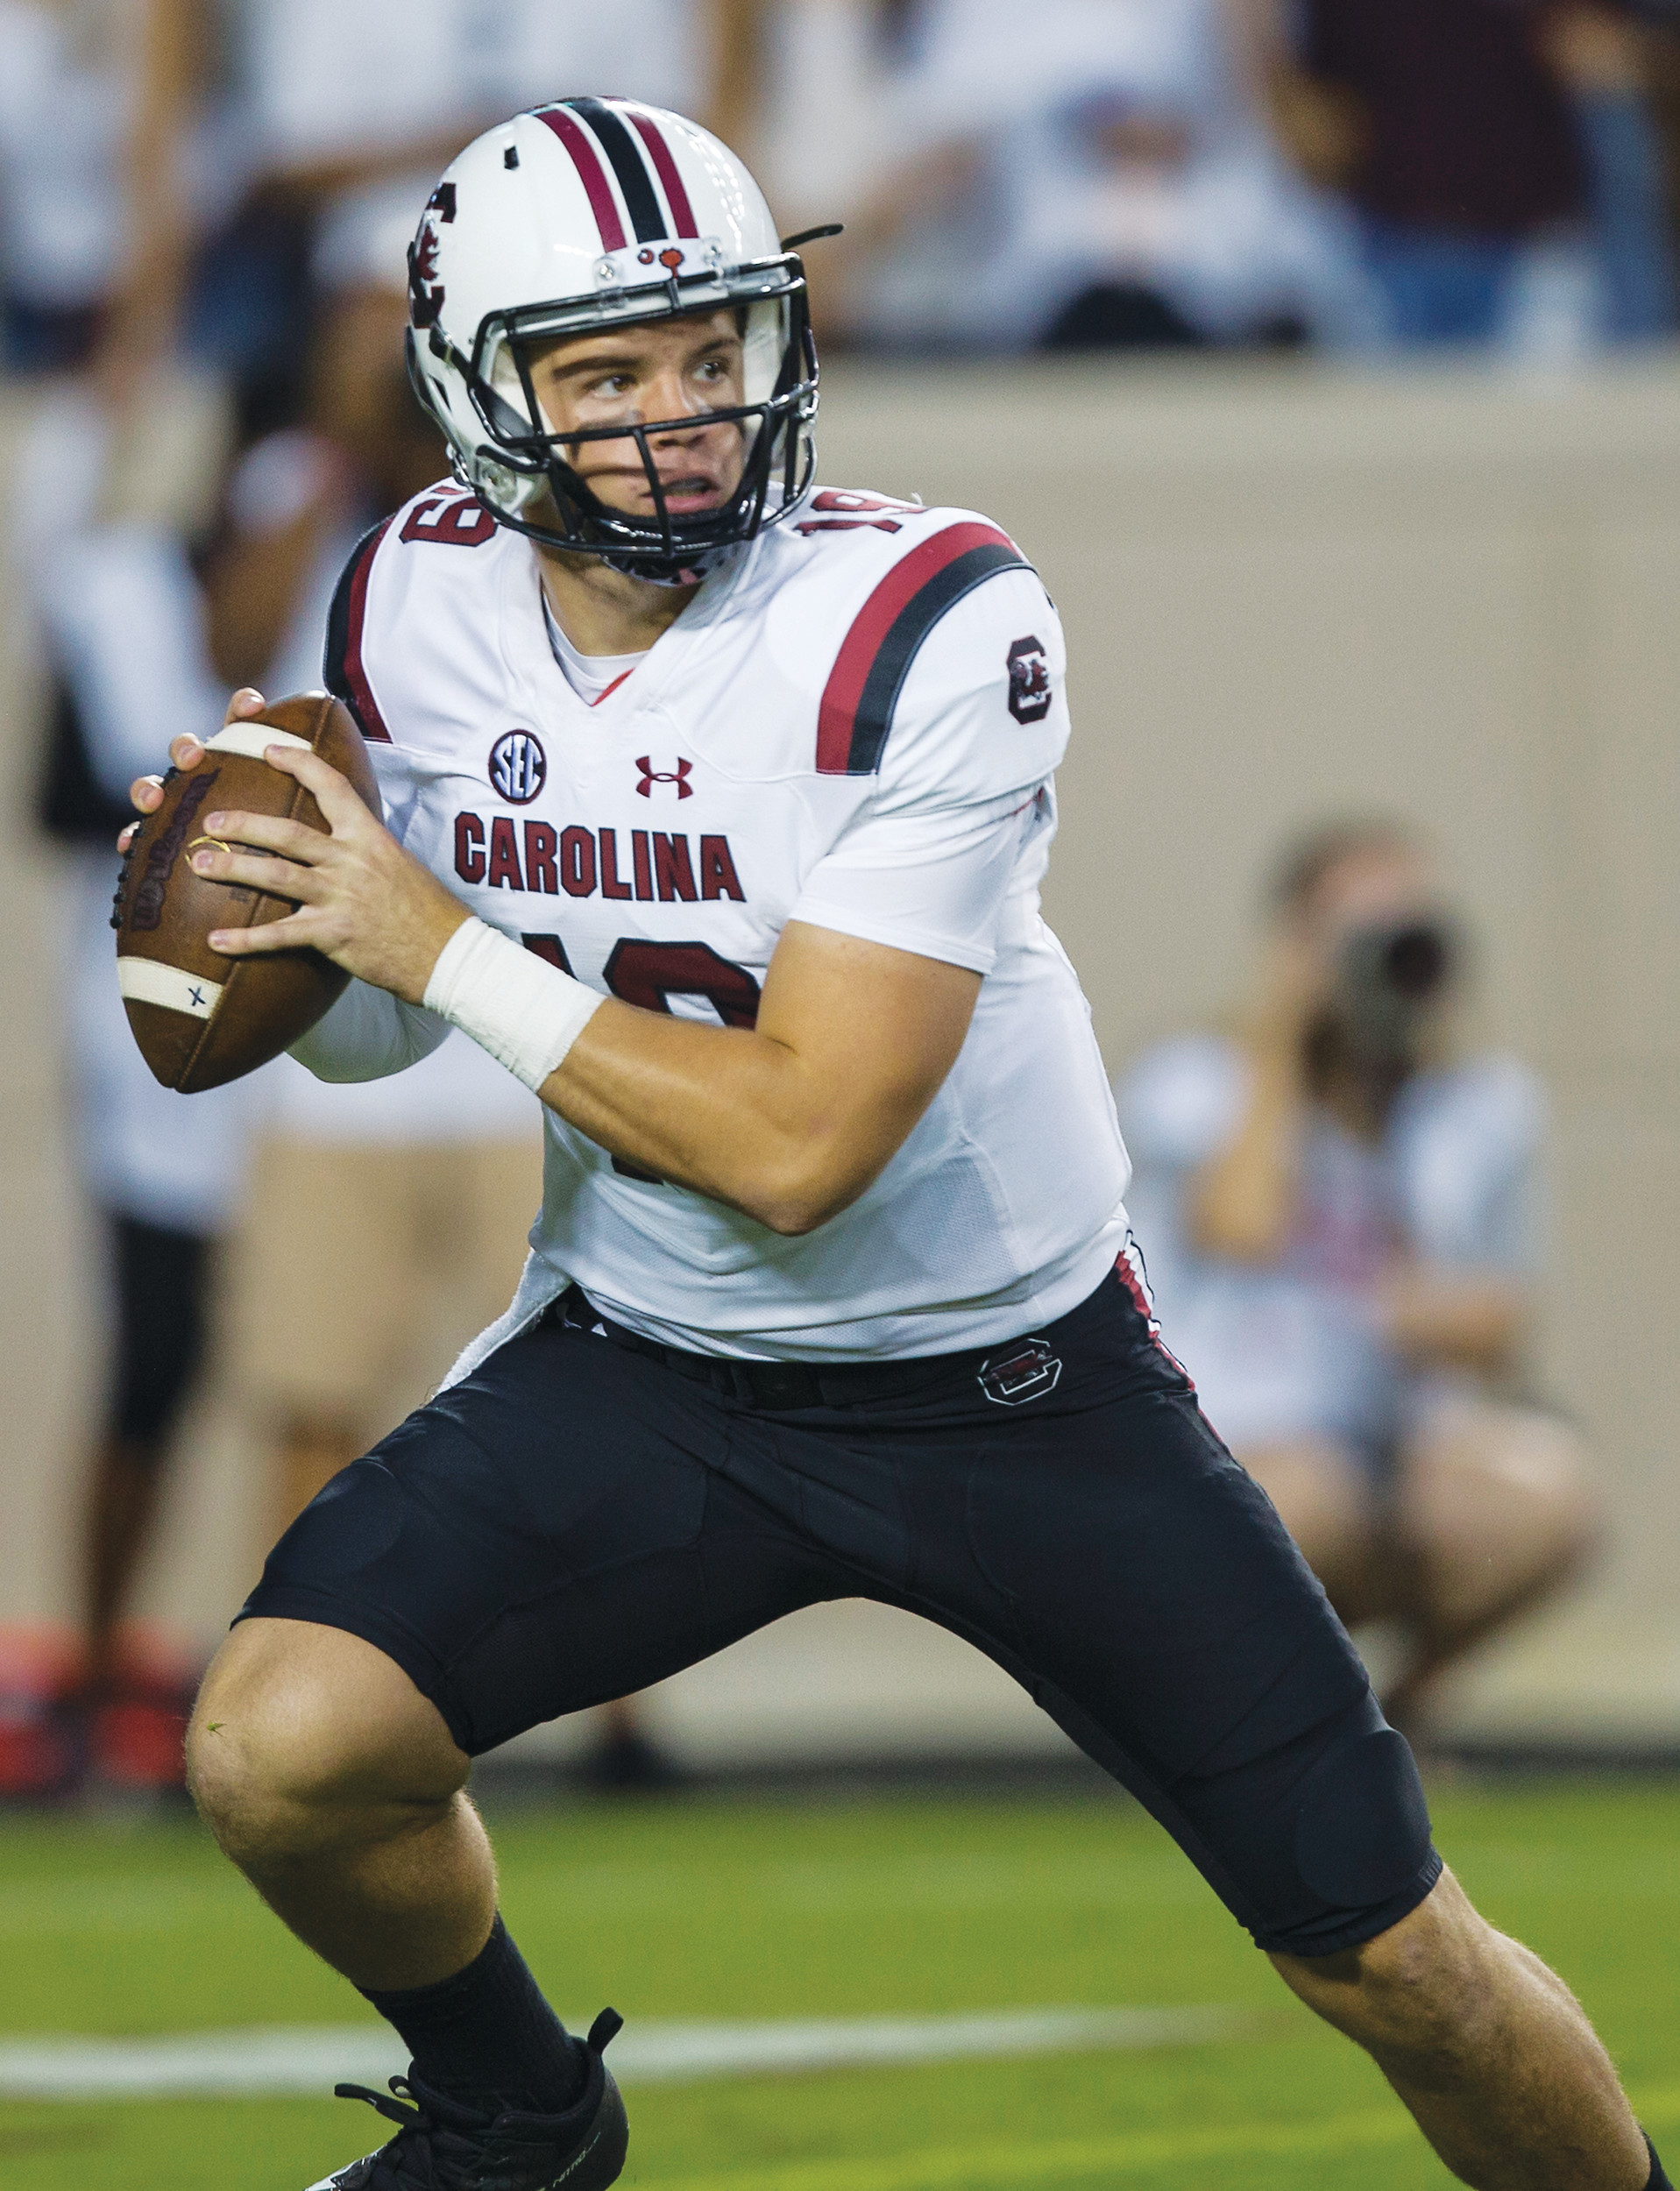 South Carolina quarterback Jake Bentley (19) looks to pass down field against Texas A&M during the first quarter of their game in College Station, Texas. After getting a firsthand look at how a quarterback switch caused South Carolina to heat up late last season, Tennessee is hoping its own shake-up provides a similar spark. South Carolina was 2-4 last season when the Gamecocks abandoned plans to redshirt Jake Bentley and moved the freshman to the top of their depth chart. Tennessee now wants to flip the script, as redshirt freshman Jarrett Guarantano makes his first career start Saturday when the Volunteers host the Gamecocks.